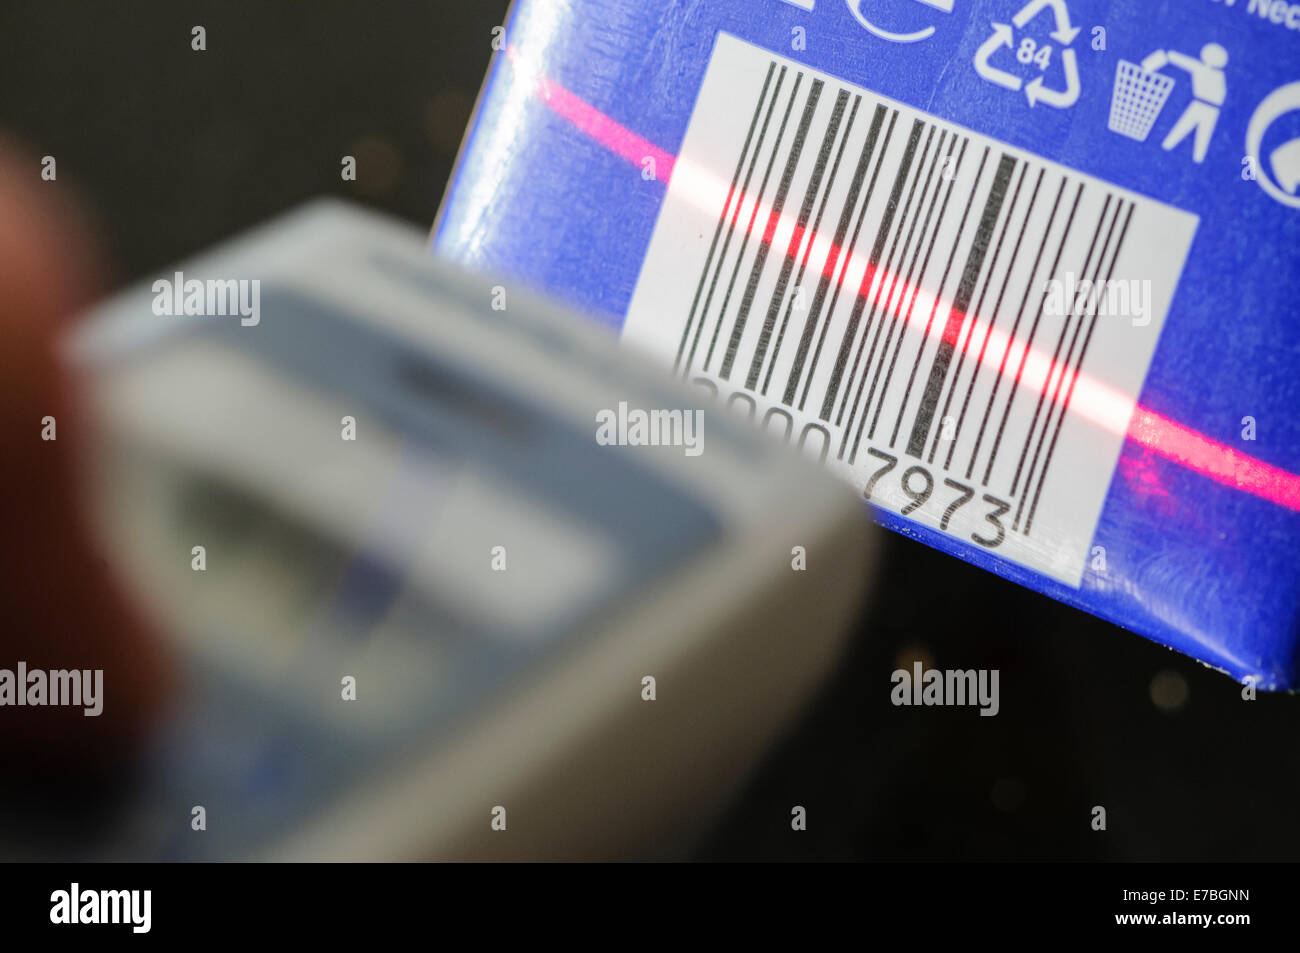 A man uses a handheld barcode scanner - Stock Image